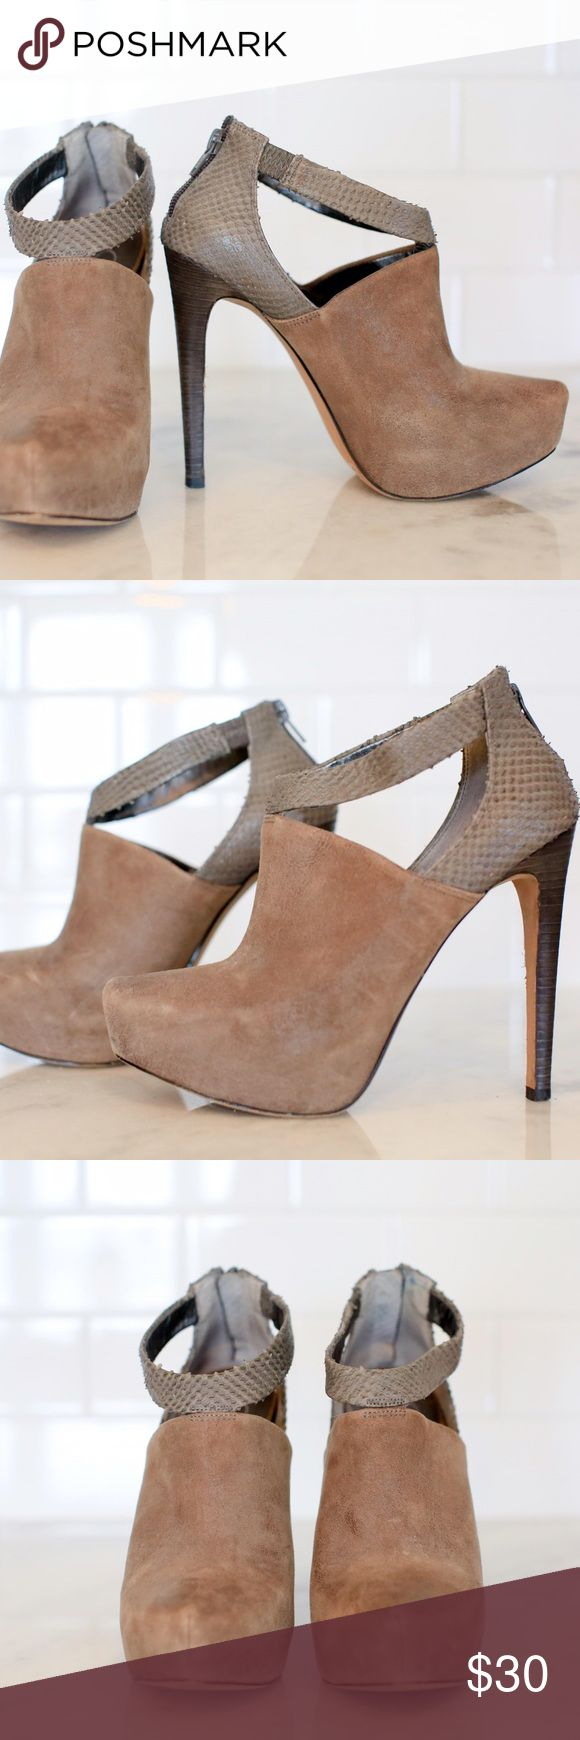 Jessica Simpson Booties Adorable Jessica Simpson zip-back heeled booties. Only worn once, hate to get rid of them but they're slightly small on me. Gray color with snakeskin back and ankle fabric. Love these! Jessica Simpson Shoes Ankle Boots & Booties